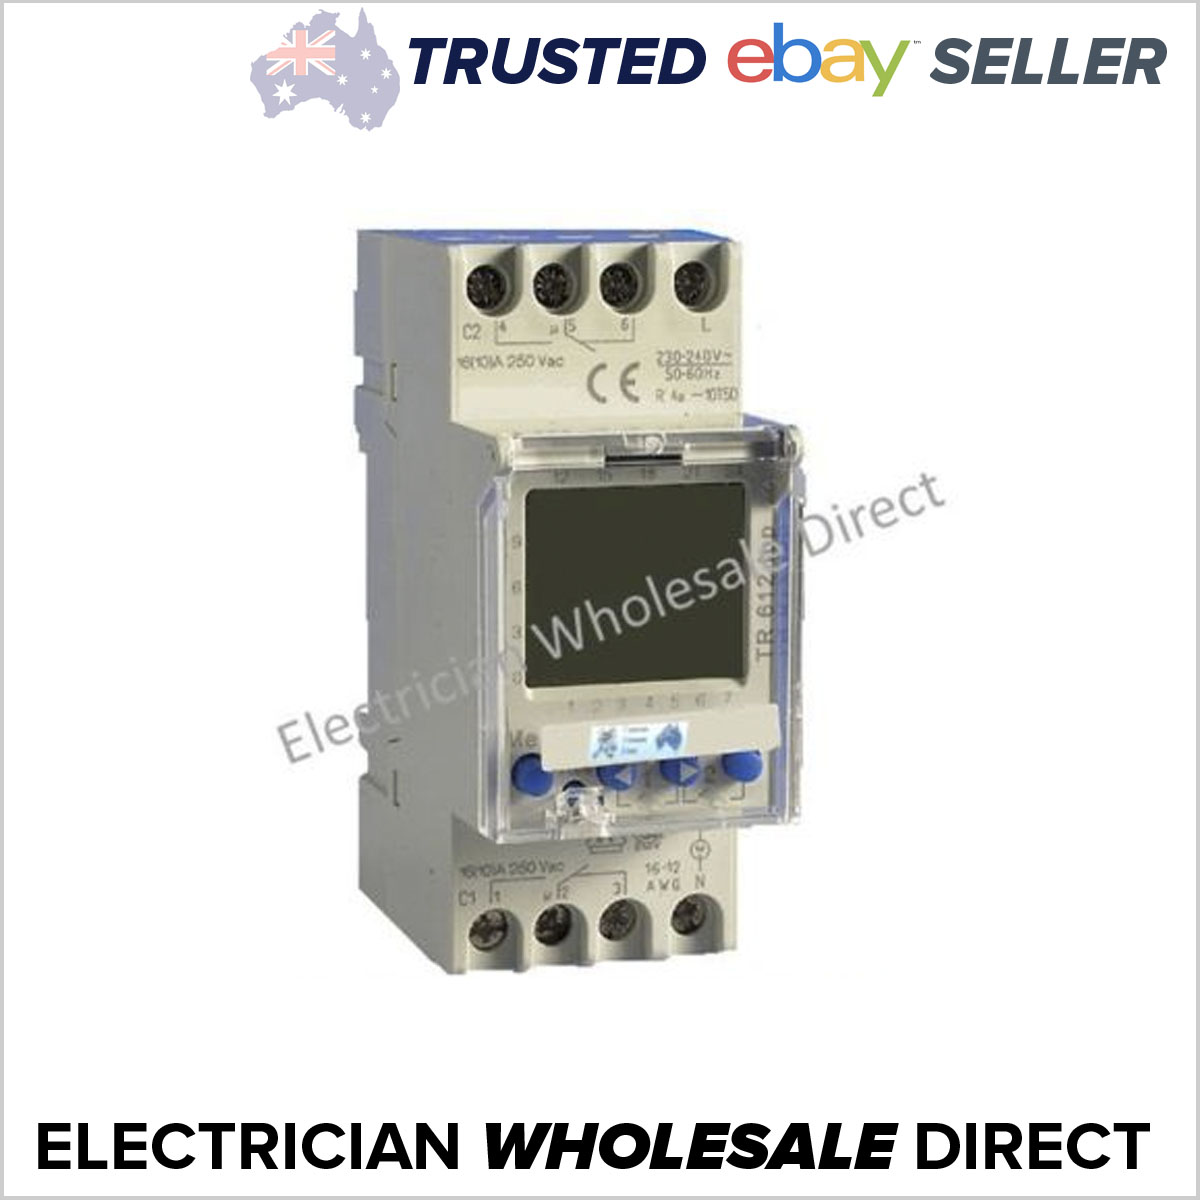 Time Clock Switch 2 Channel 7 Day Digital Pool Pump 24 Hour 240v 16a Circuit Main Product Image